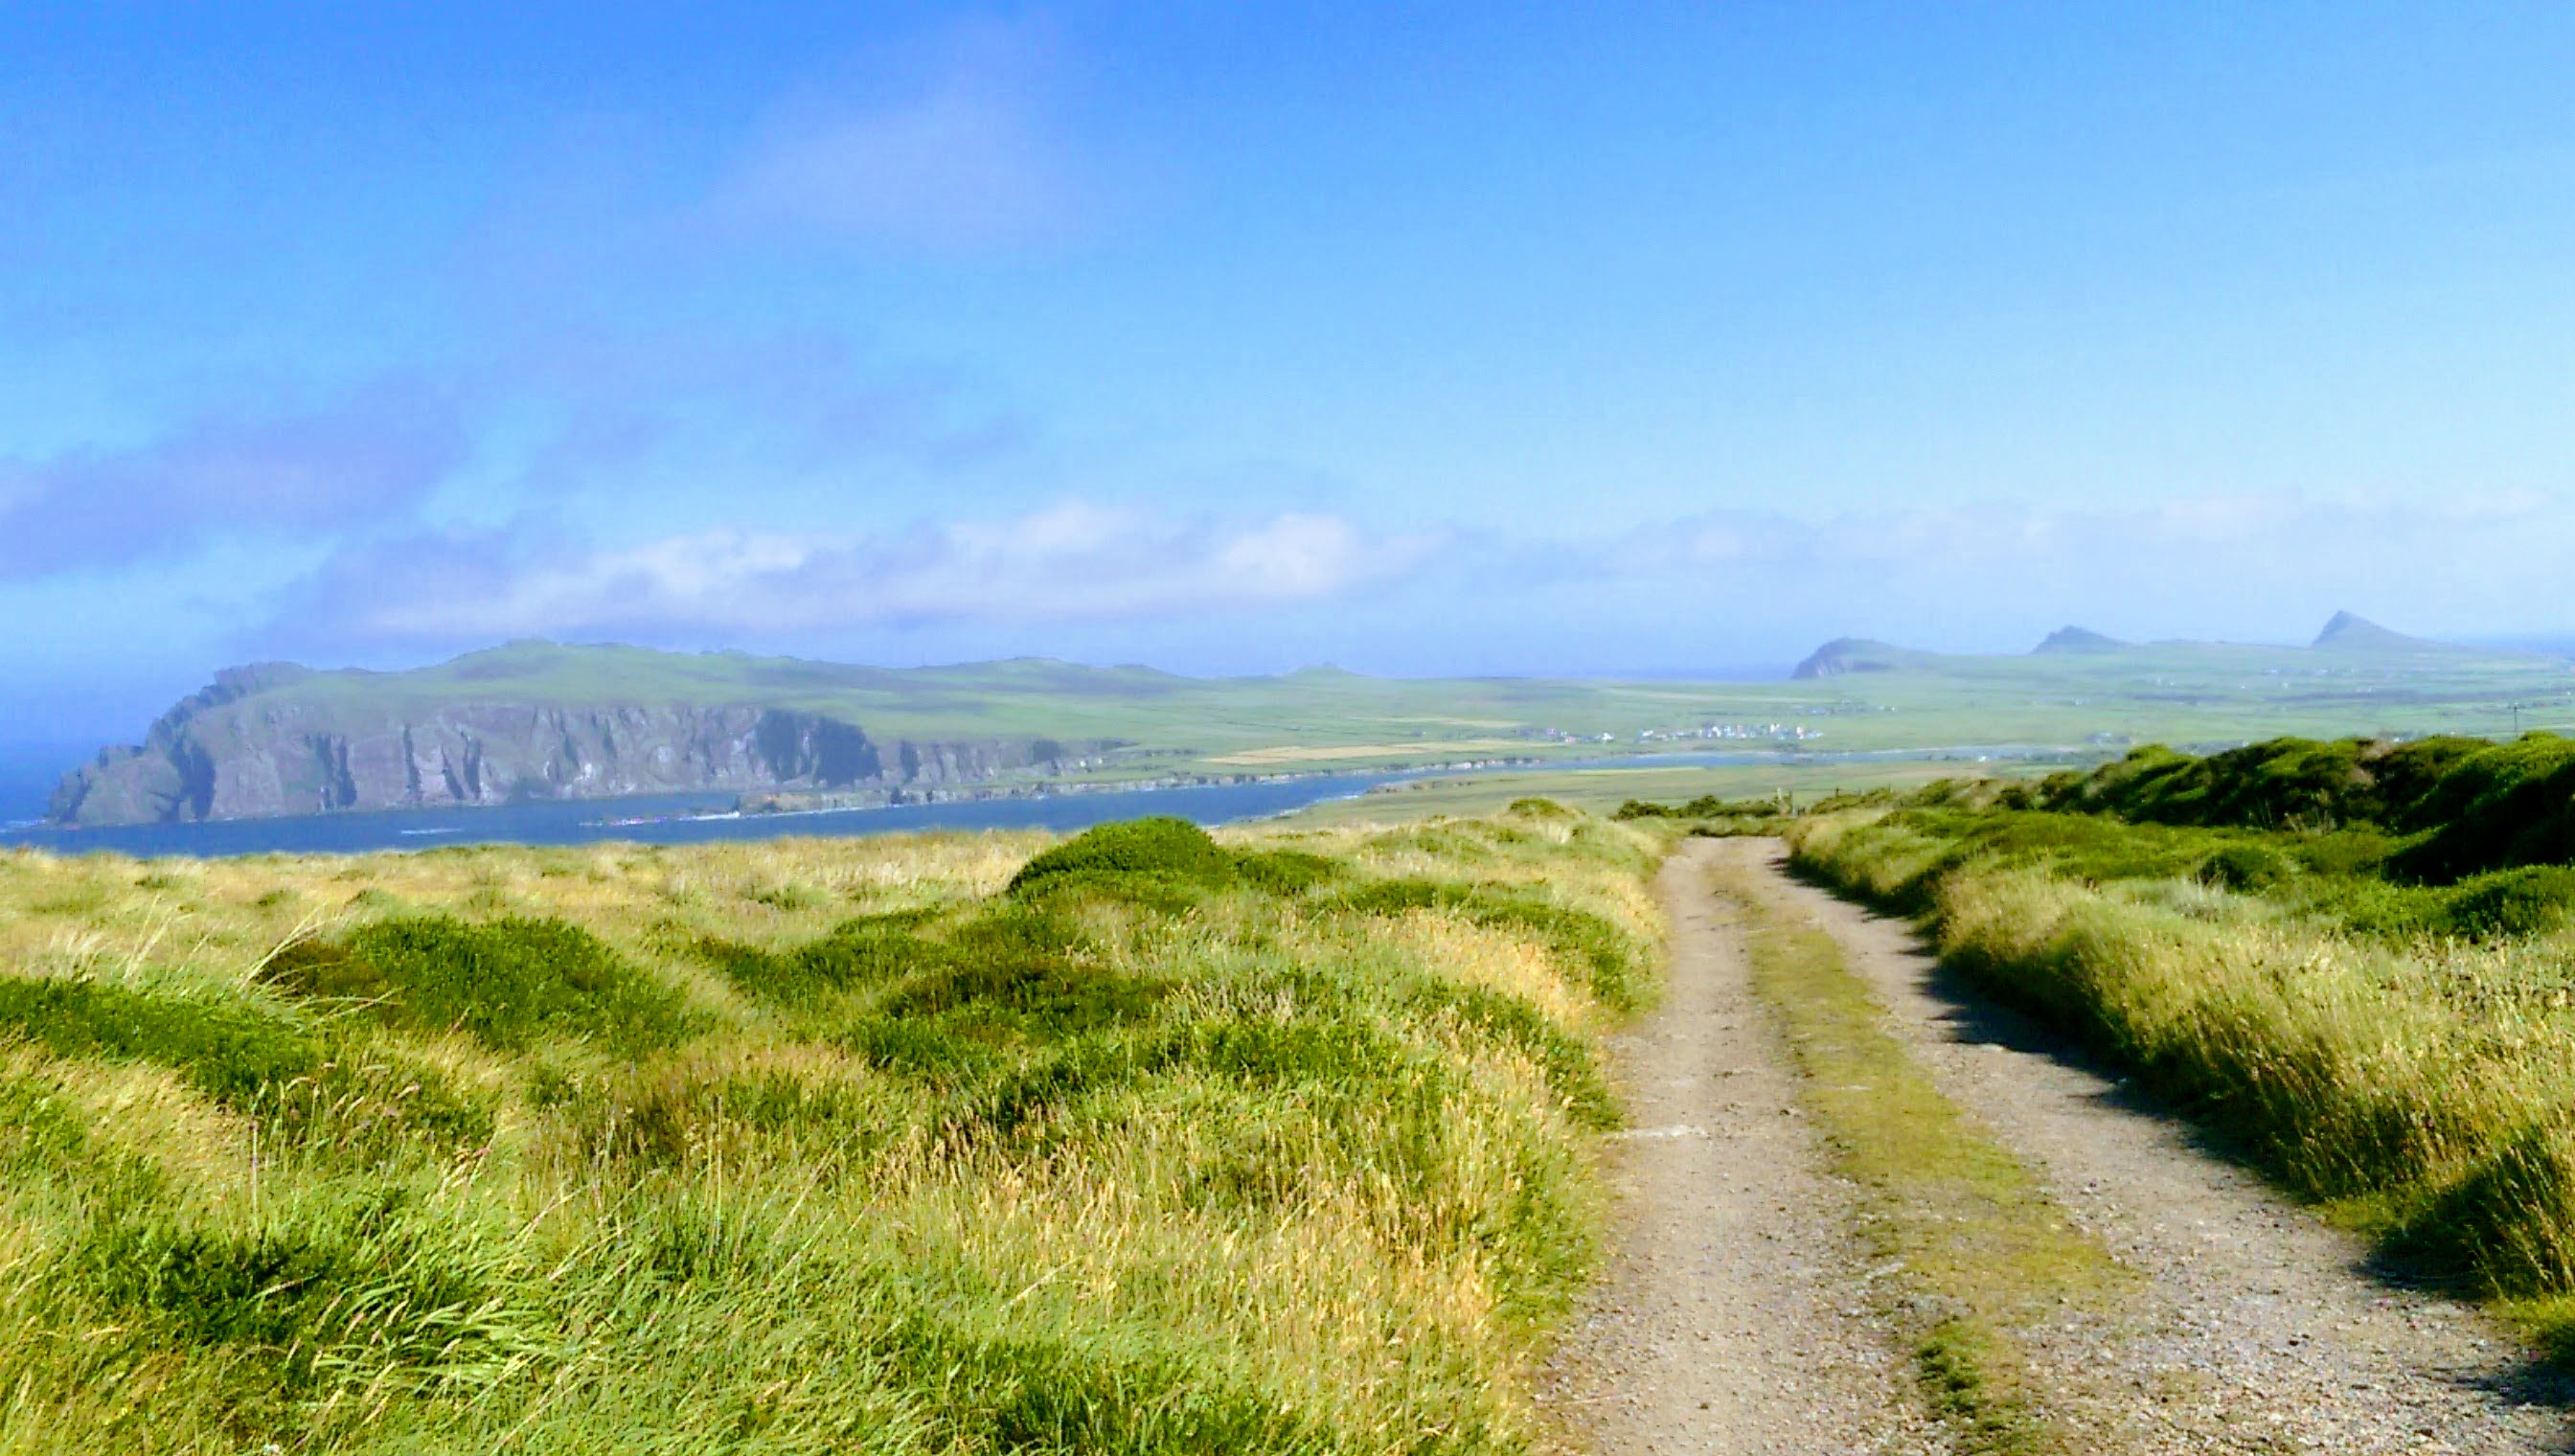 View of fields, bluffs, and the sea on an Irish Walking Trail